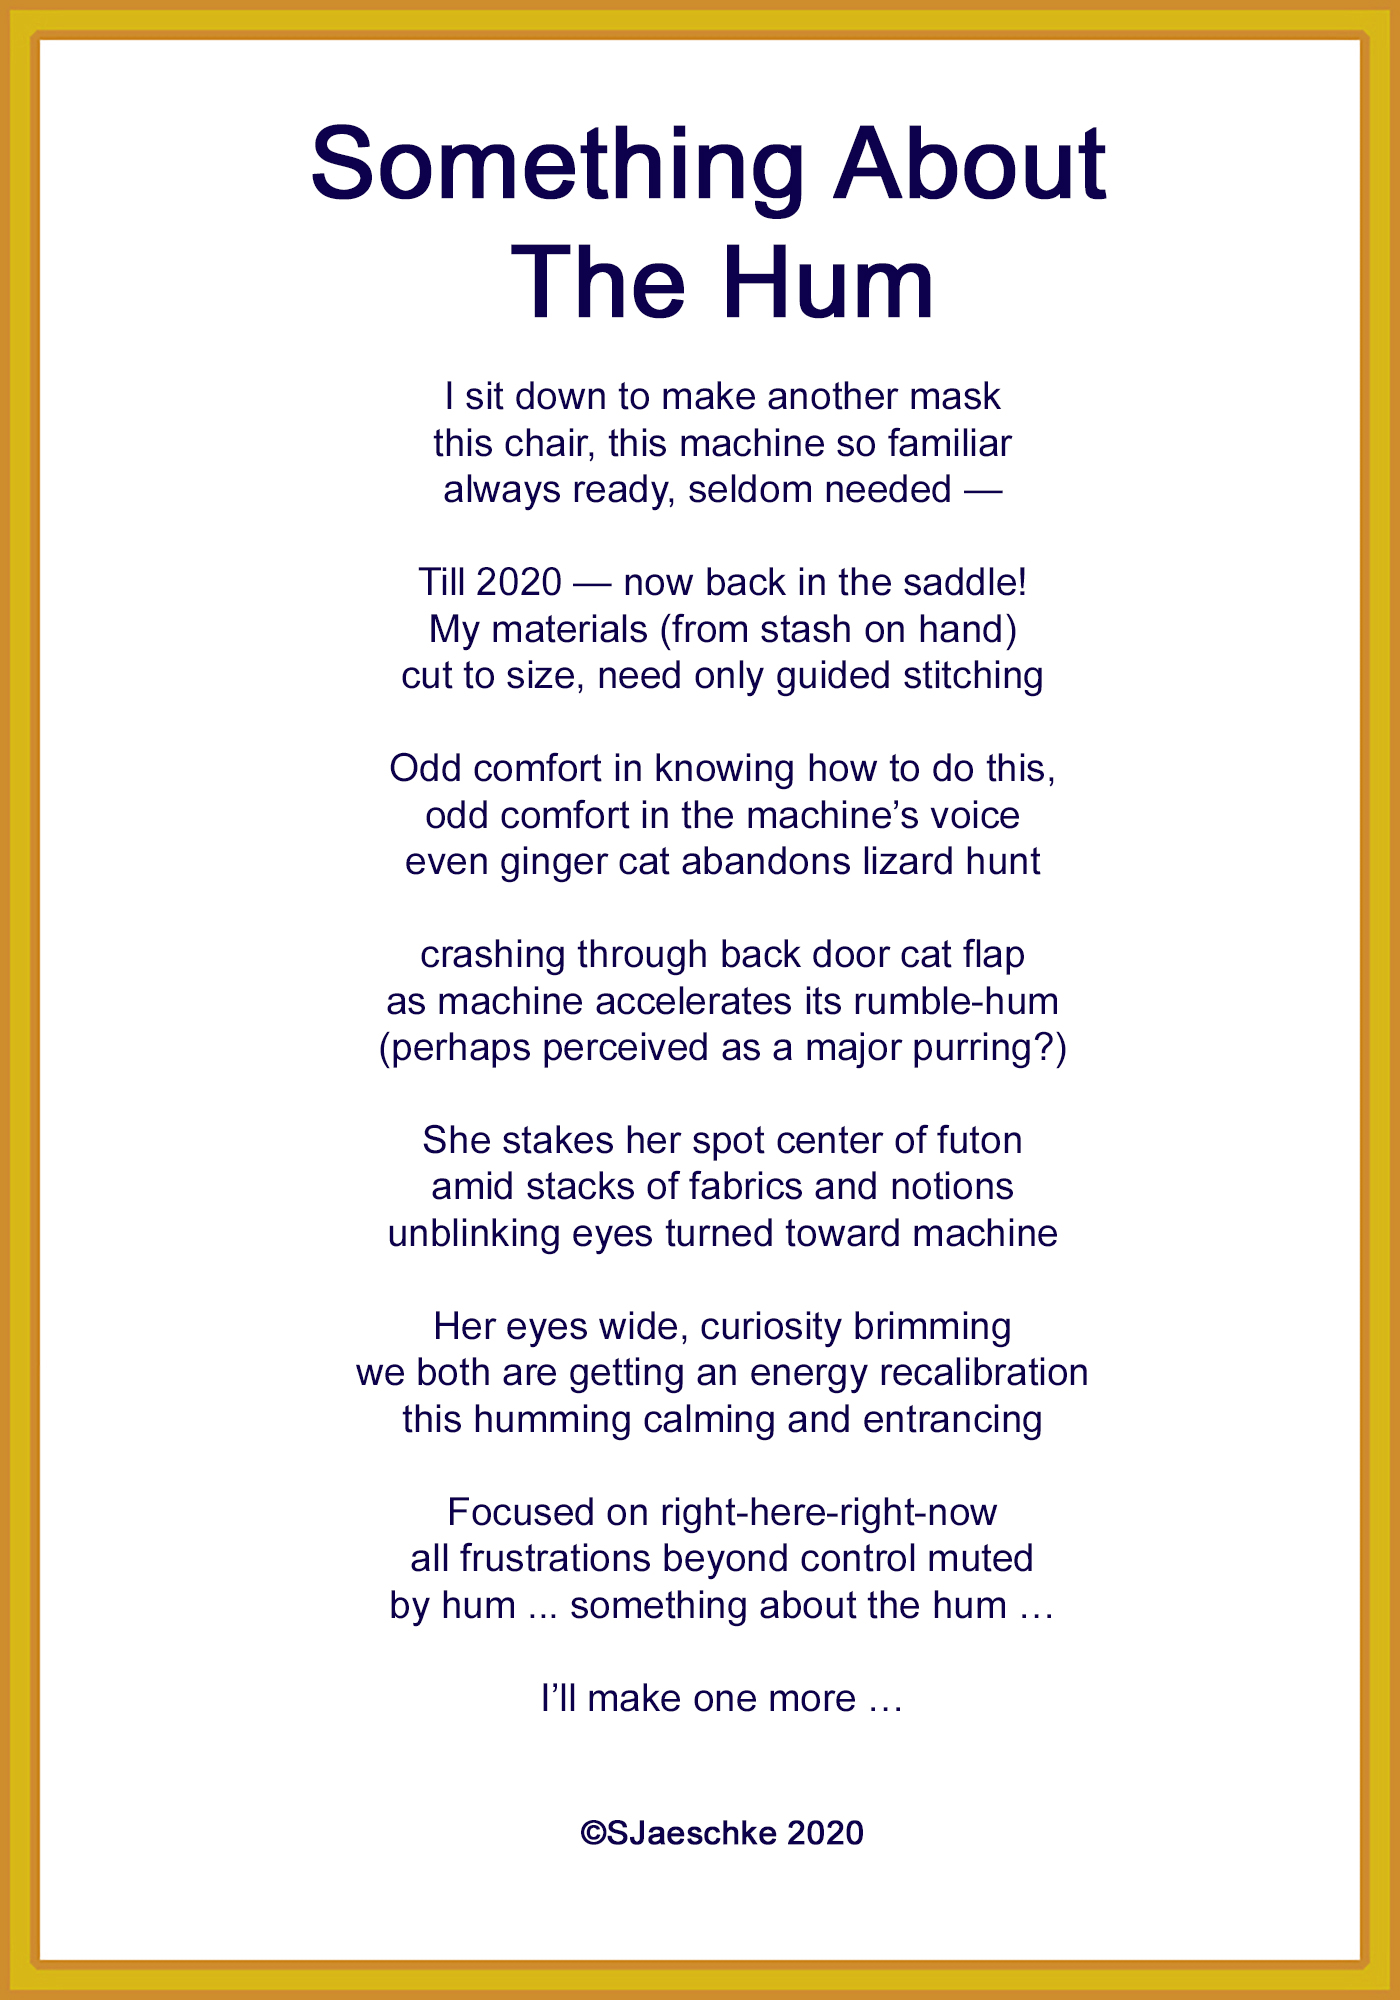 Post_2020-04-11_Poem_SomethingAboutTheHum